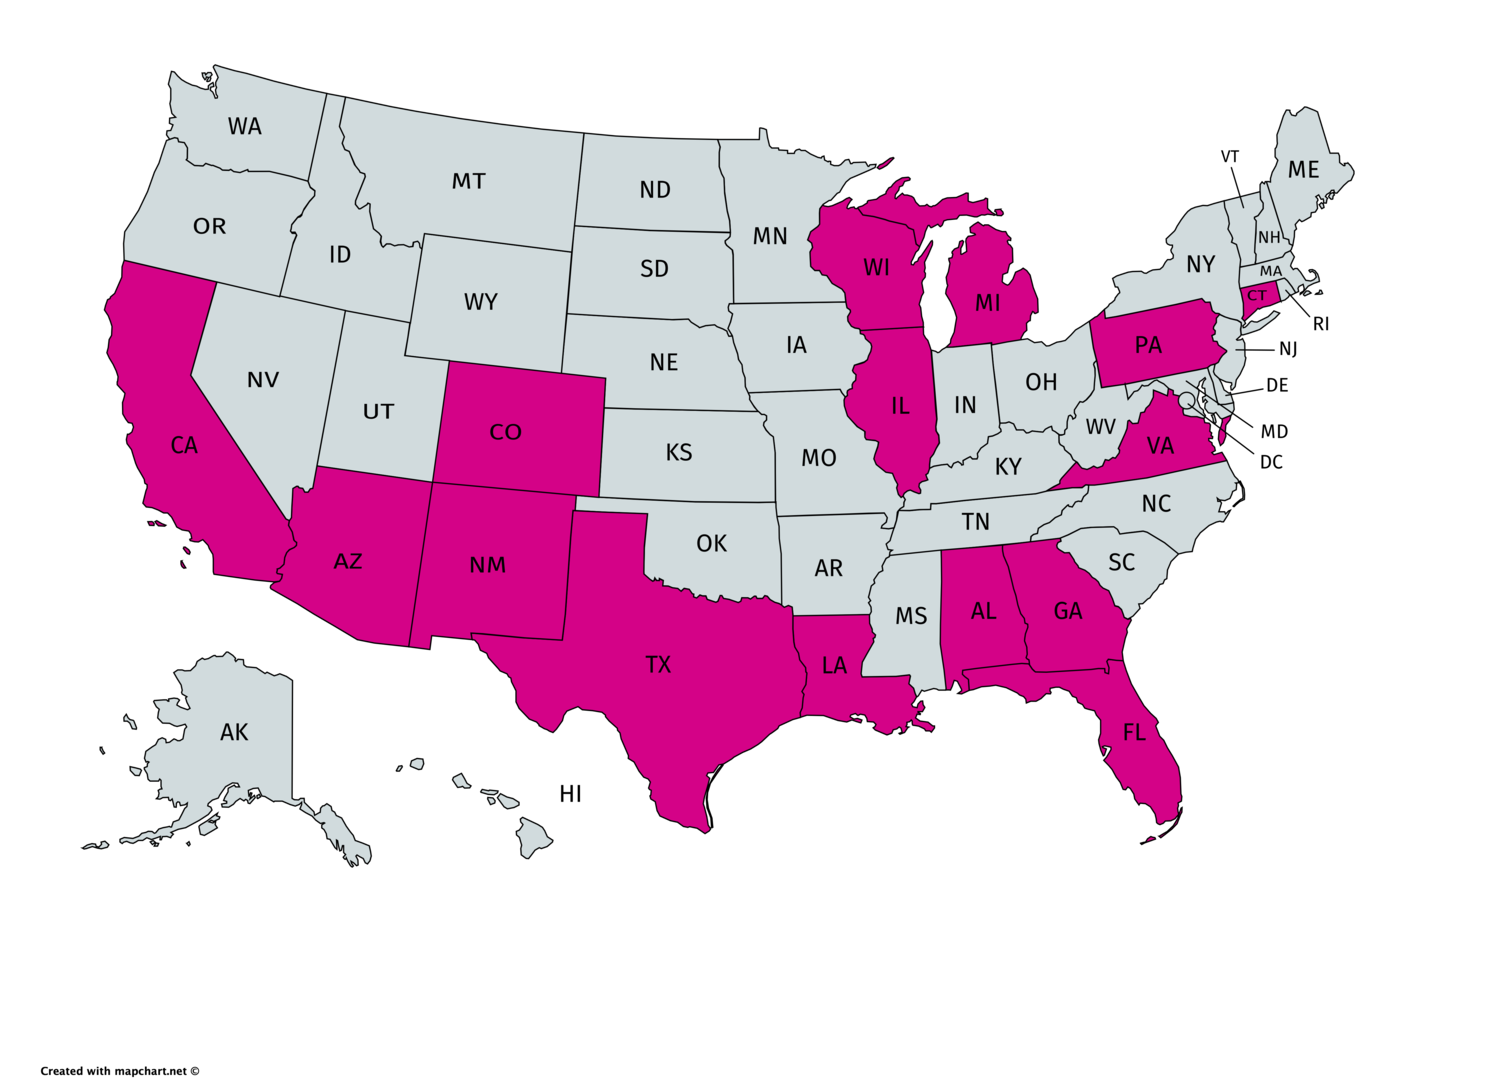 LGBTQ Freedom Fund posted bond for people awaiting case disposition in states highlighted magenta.